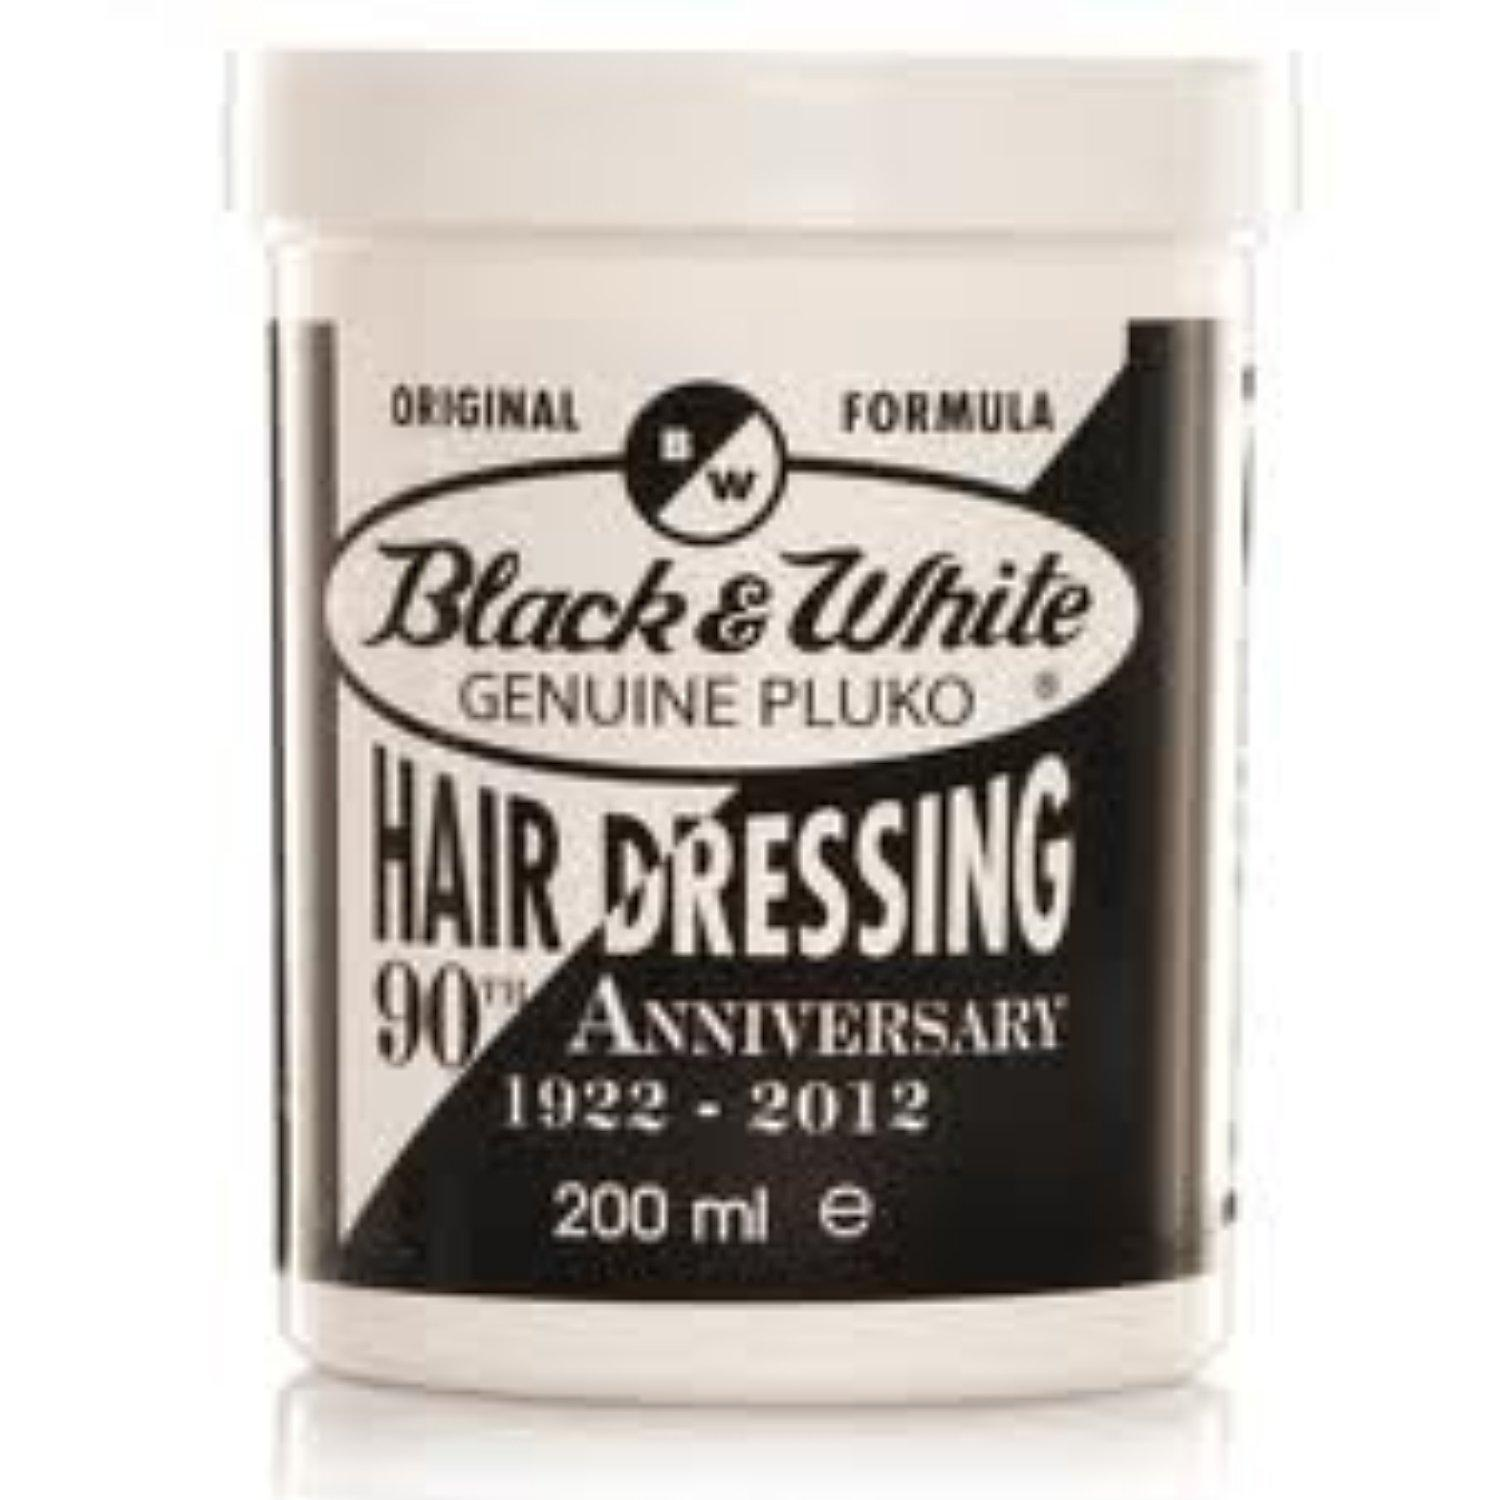 Black & White Pluko Hair Dressing 200ml, 2 (TWIN) Pack by Black and White